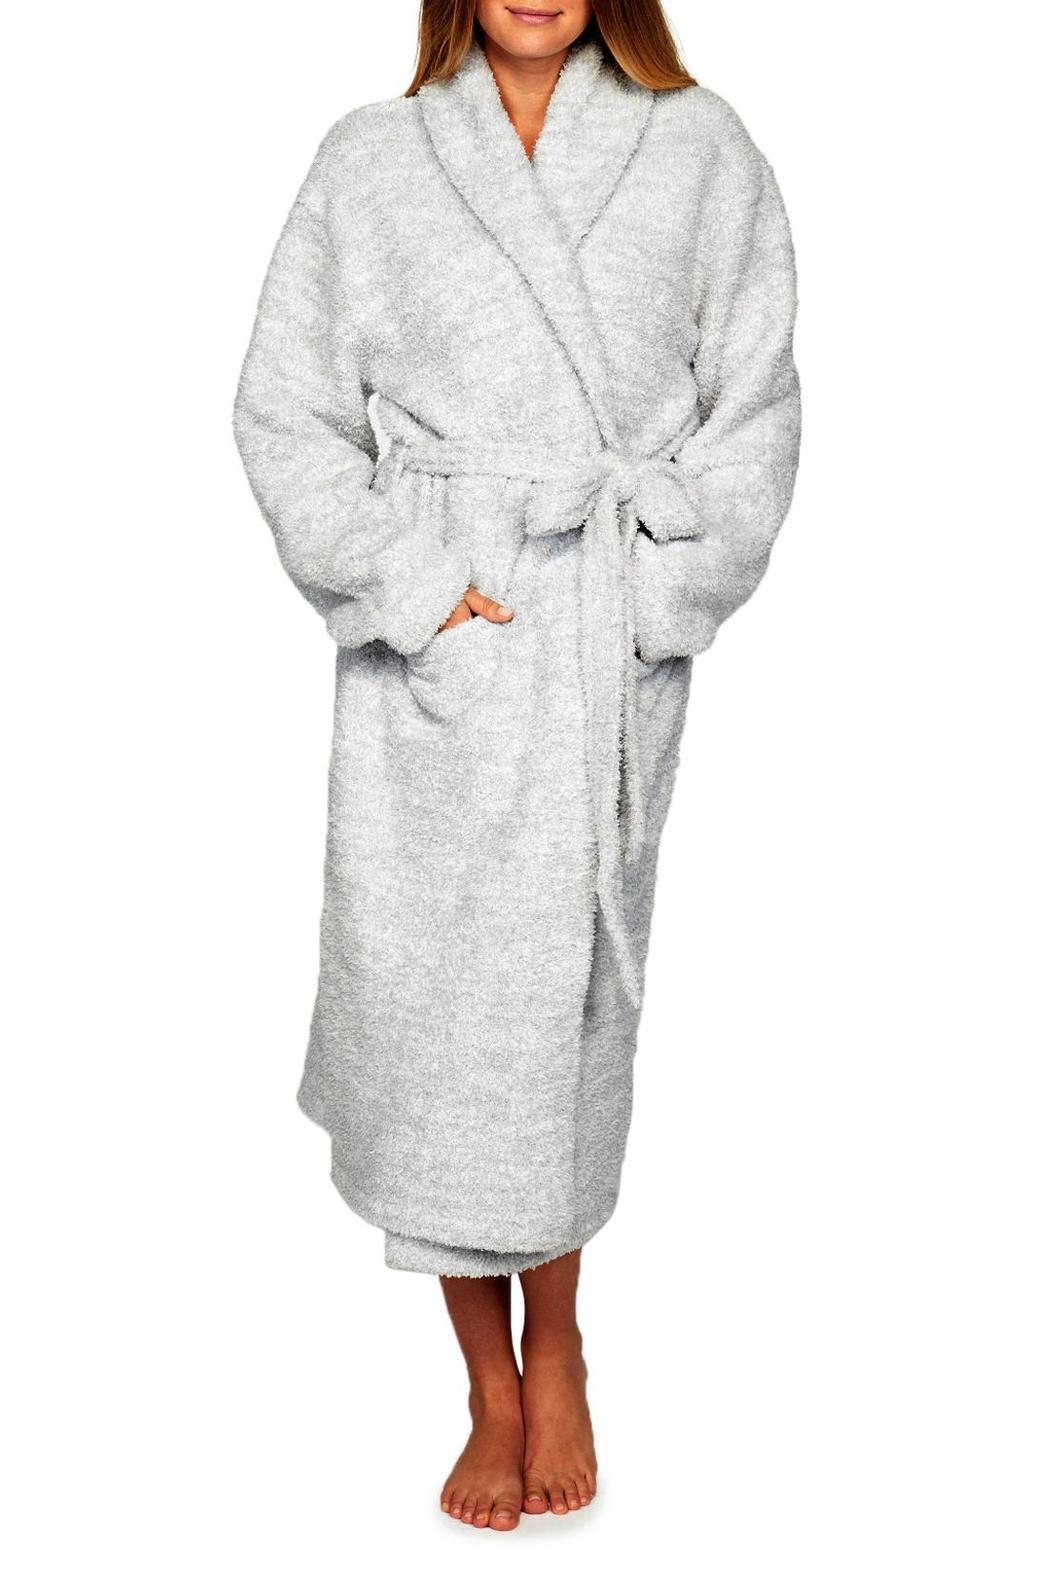 Barefoot Dreams Cozy Heathered Robe - Front Full Image